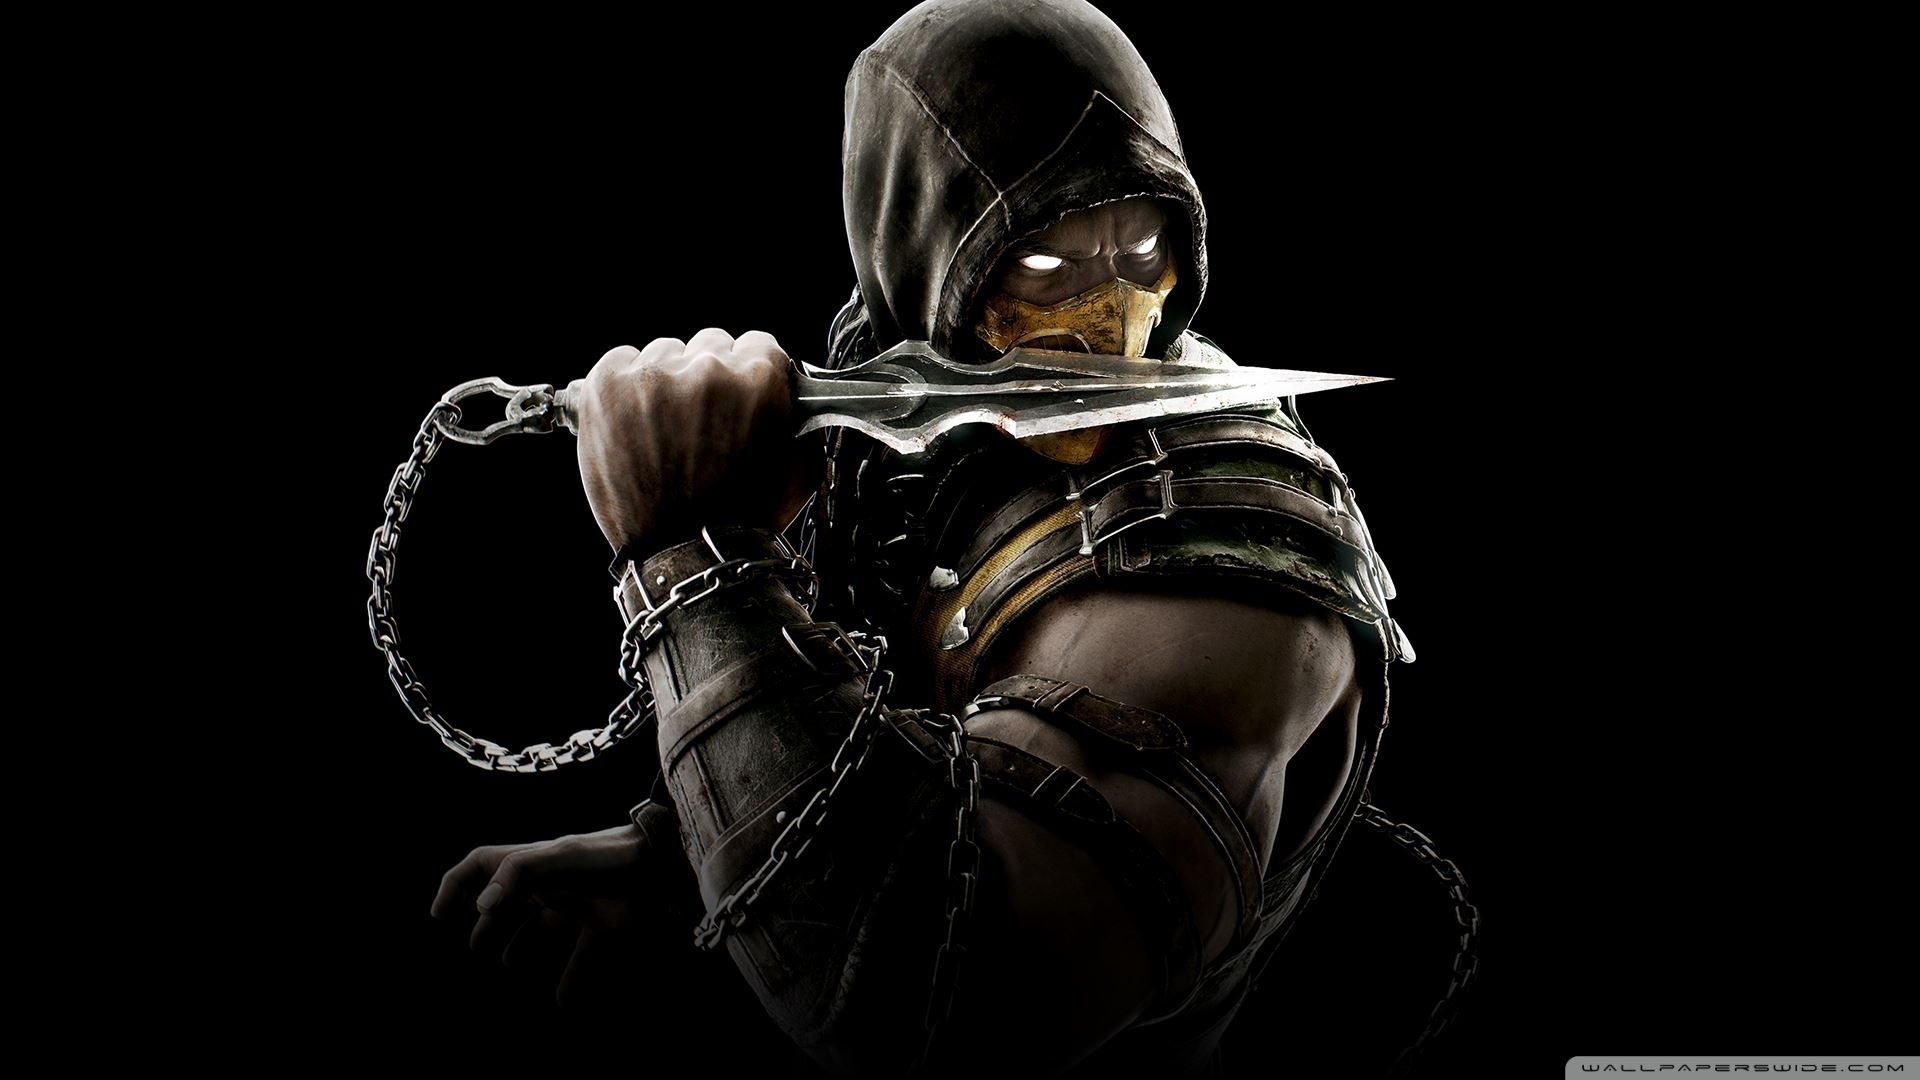 10 Best Scorpion Mortal Kombat Wallpapers Full Hd 1080p For Pc